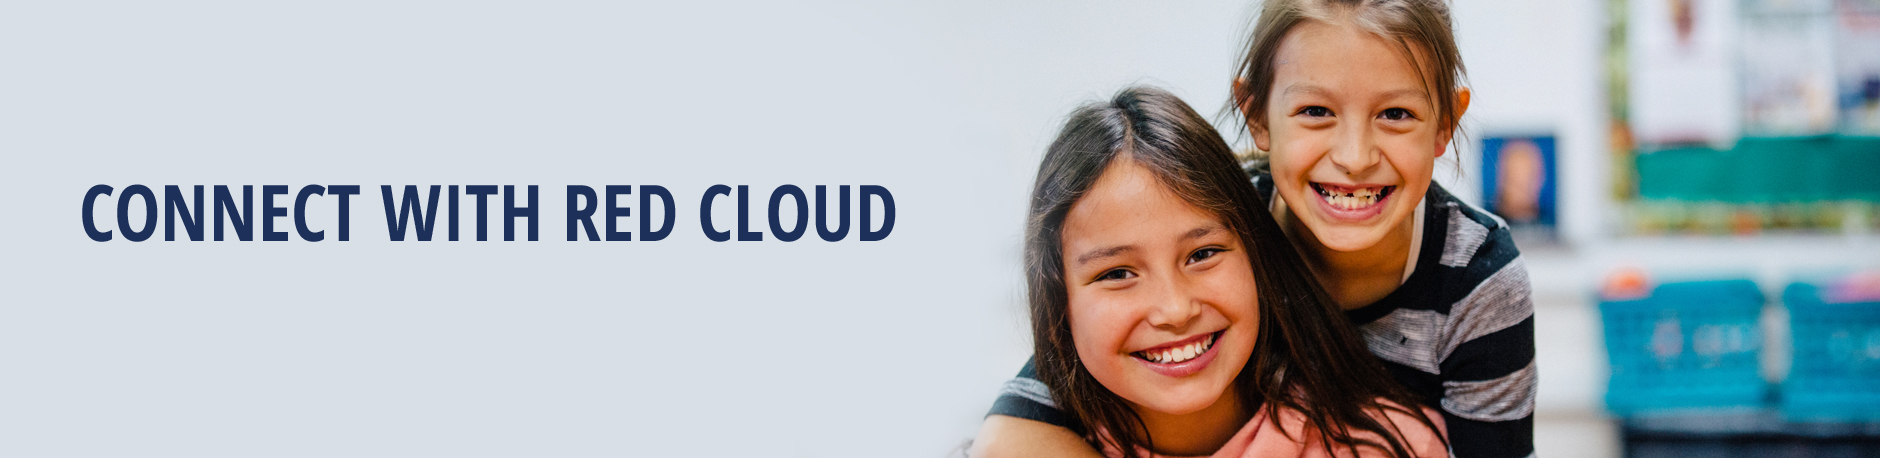 Sign up for Red Cloud email!